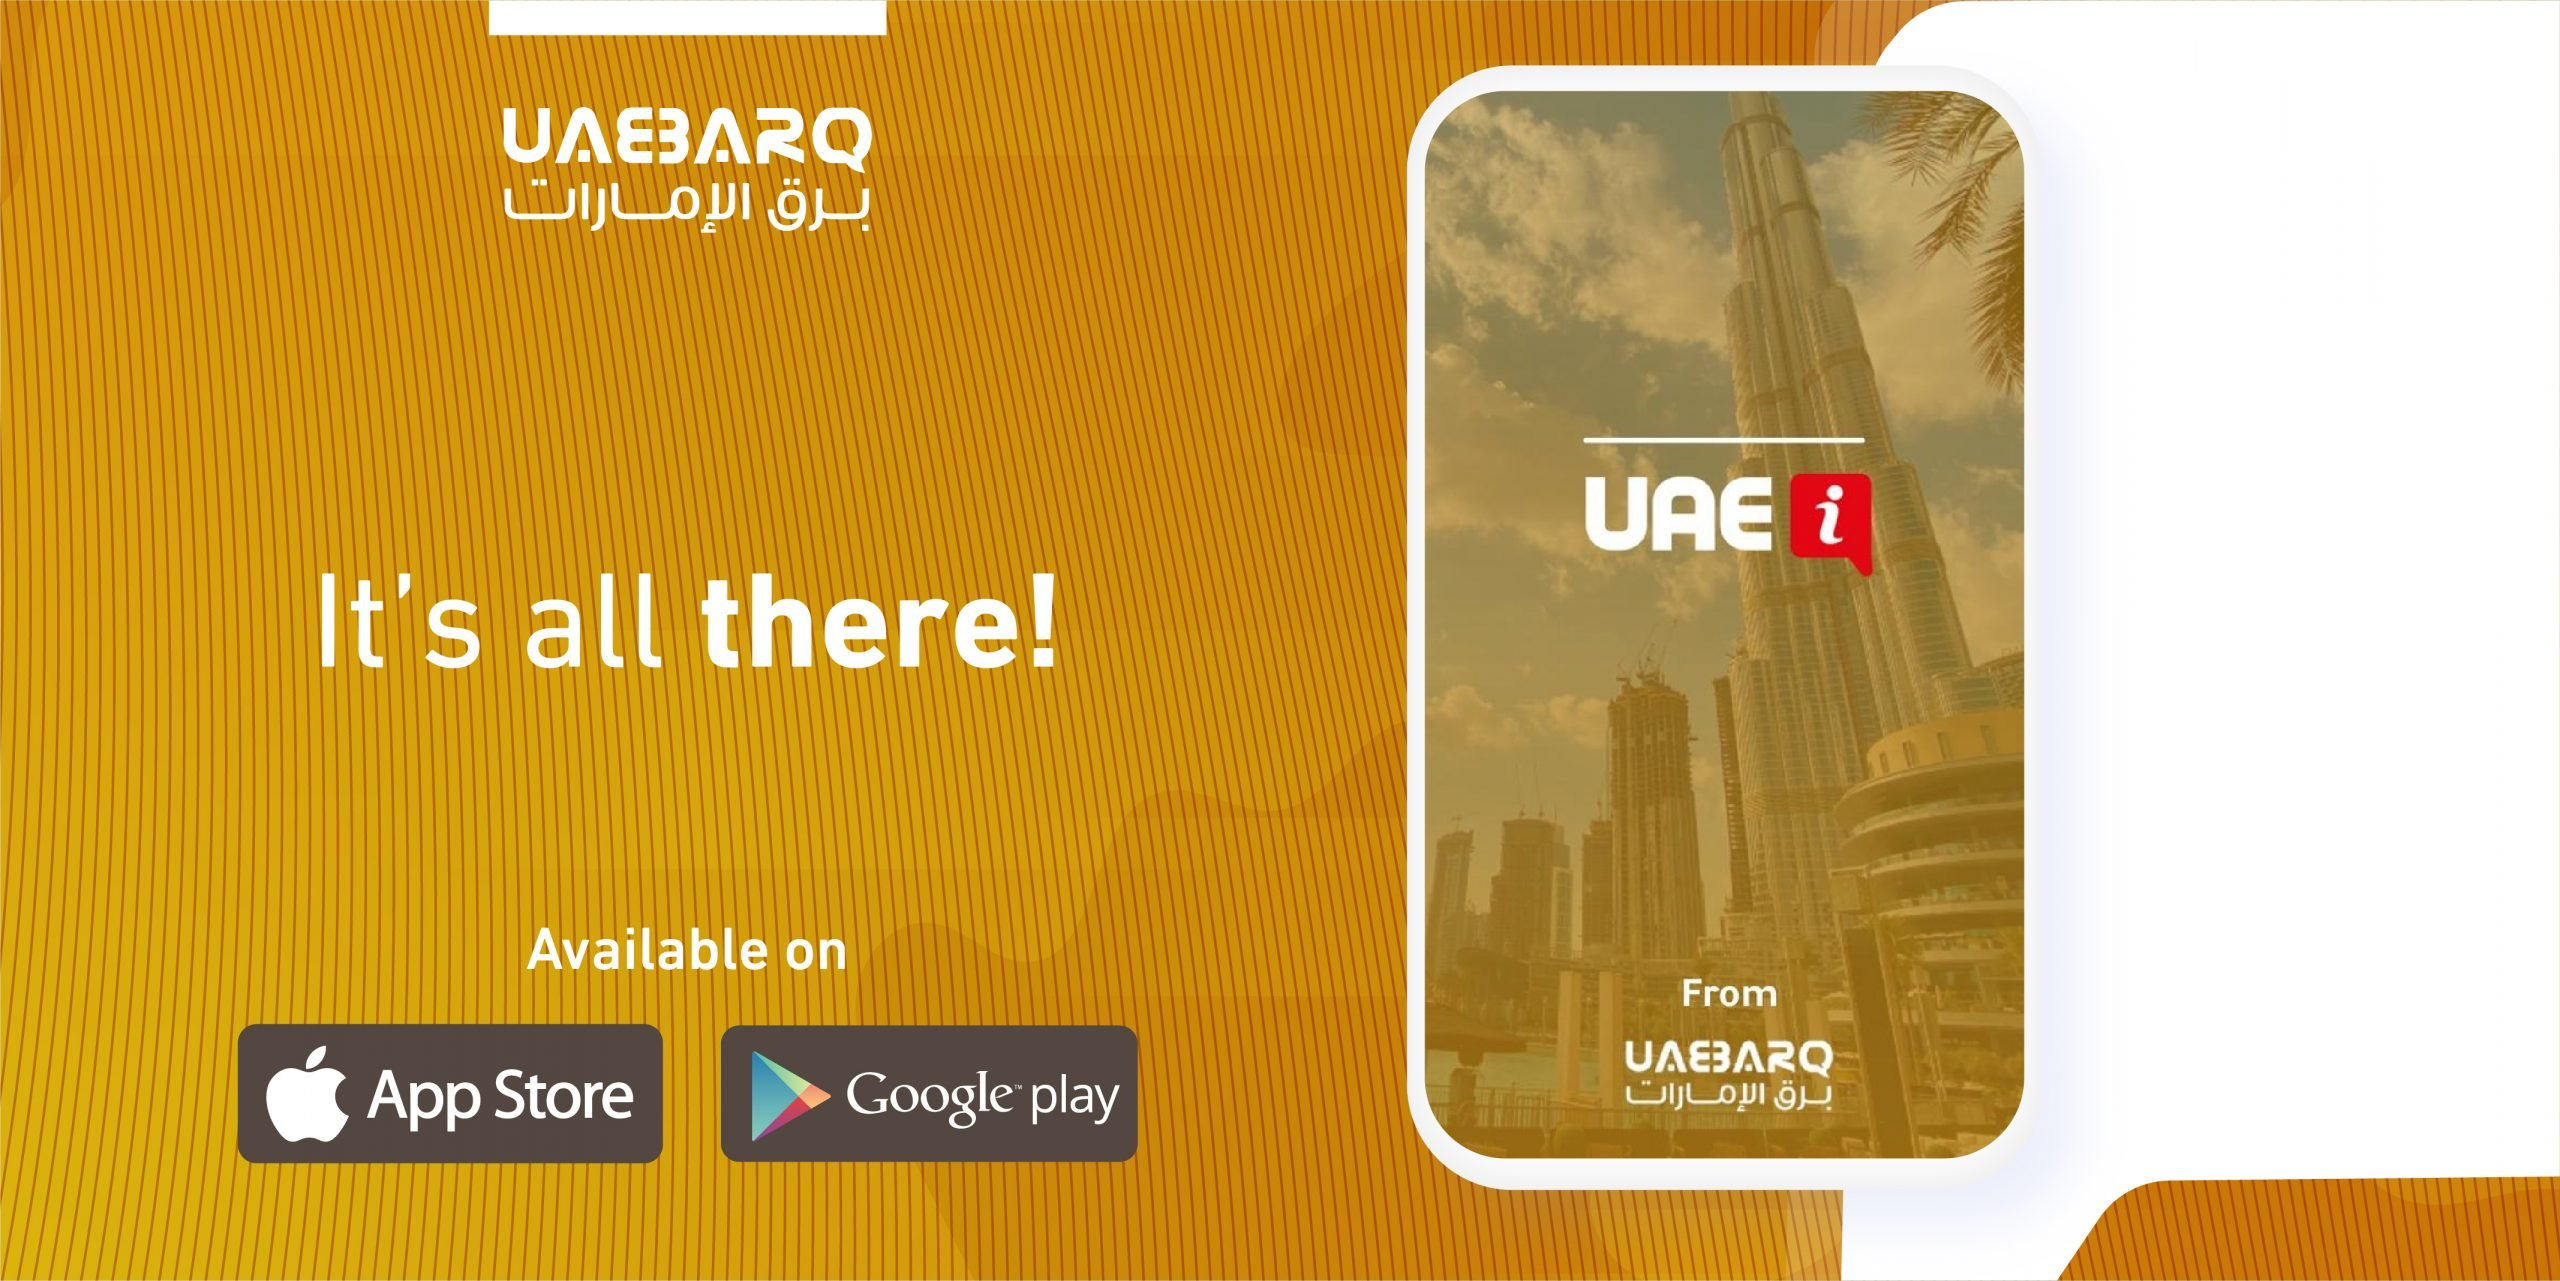 UAE BARQ launches New Smart App – 'UAE INFO'